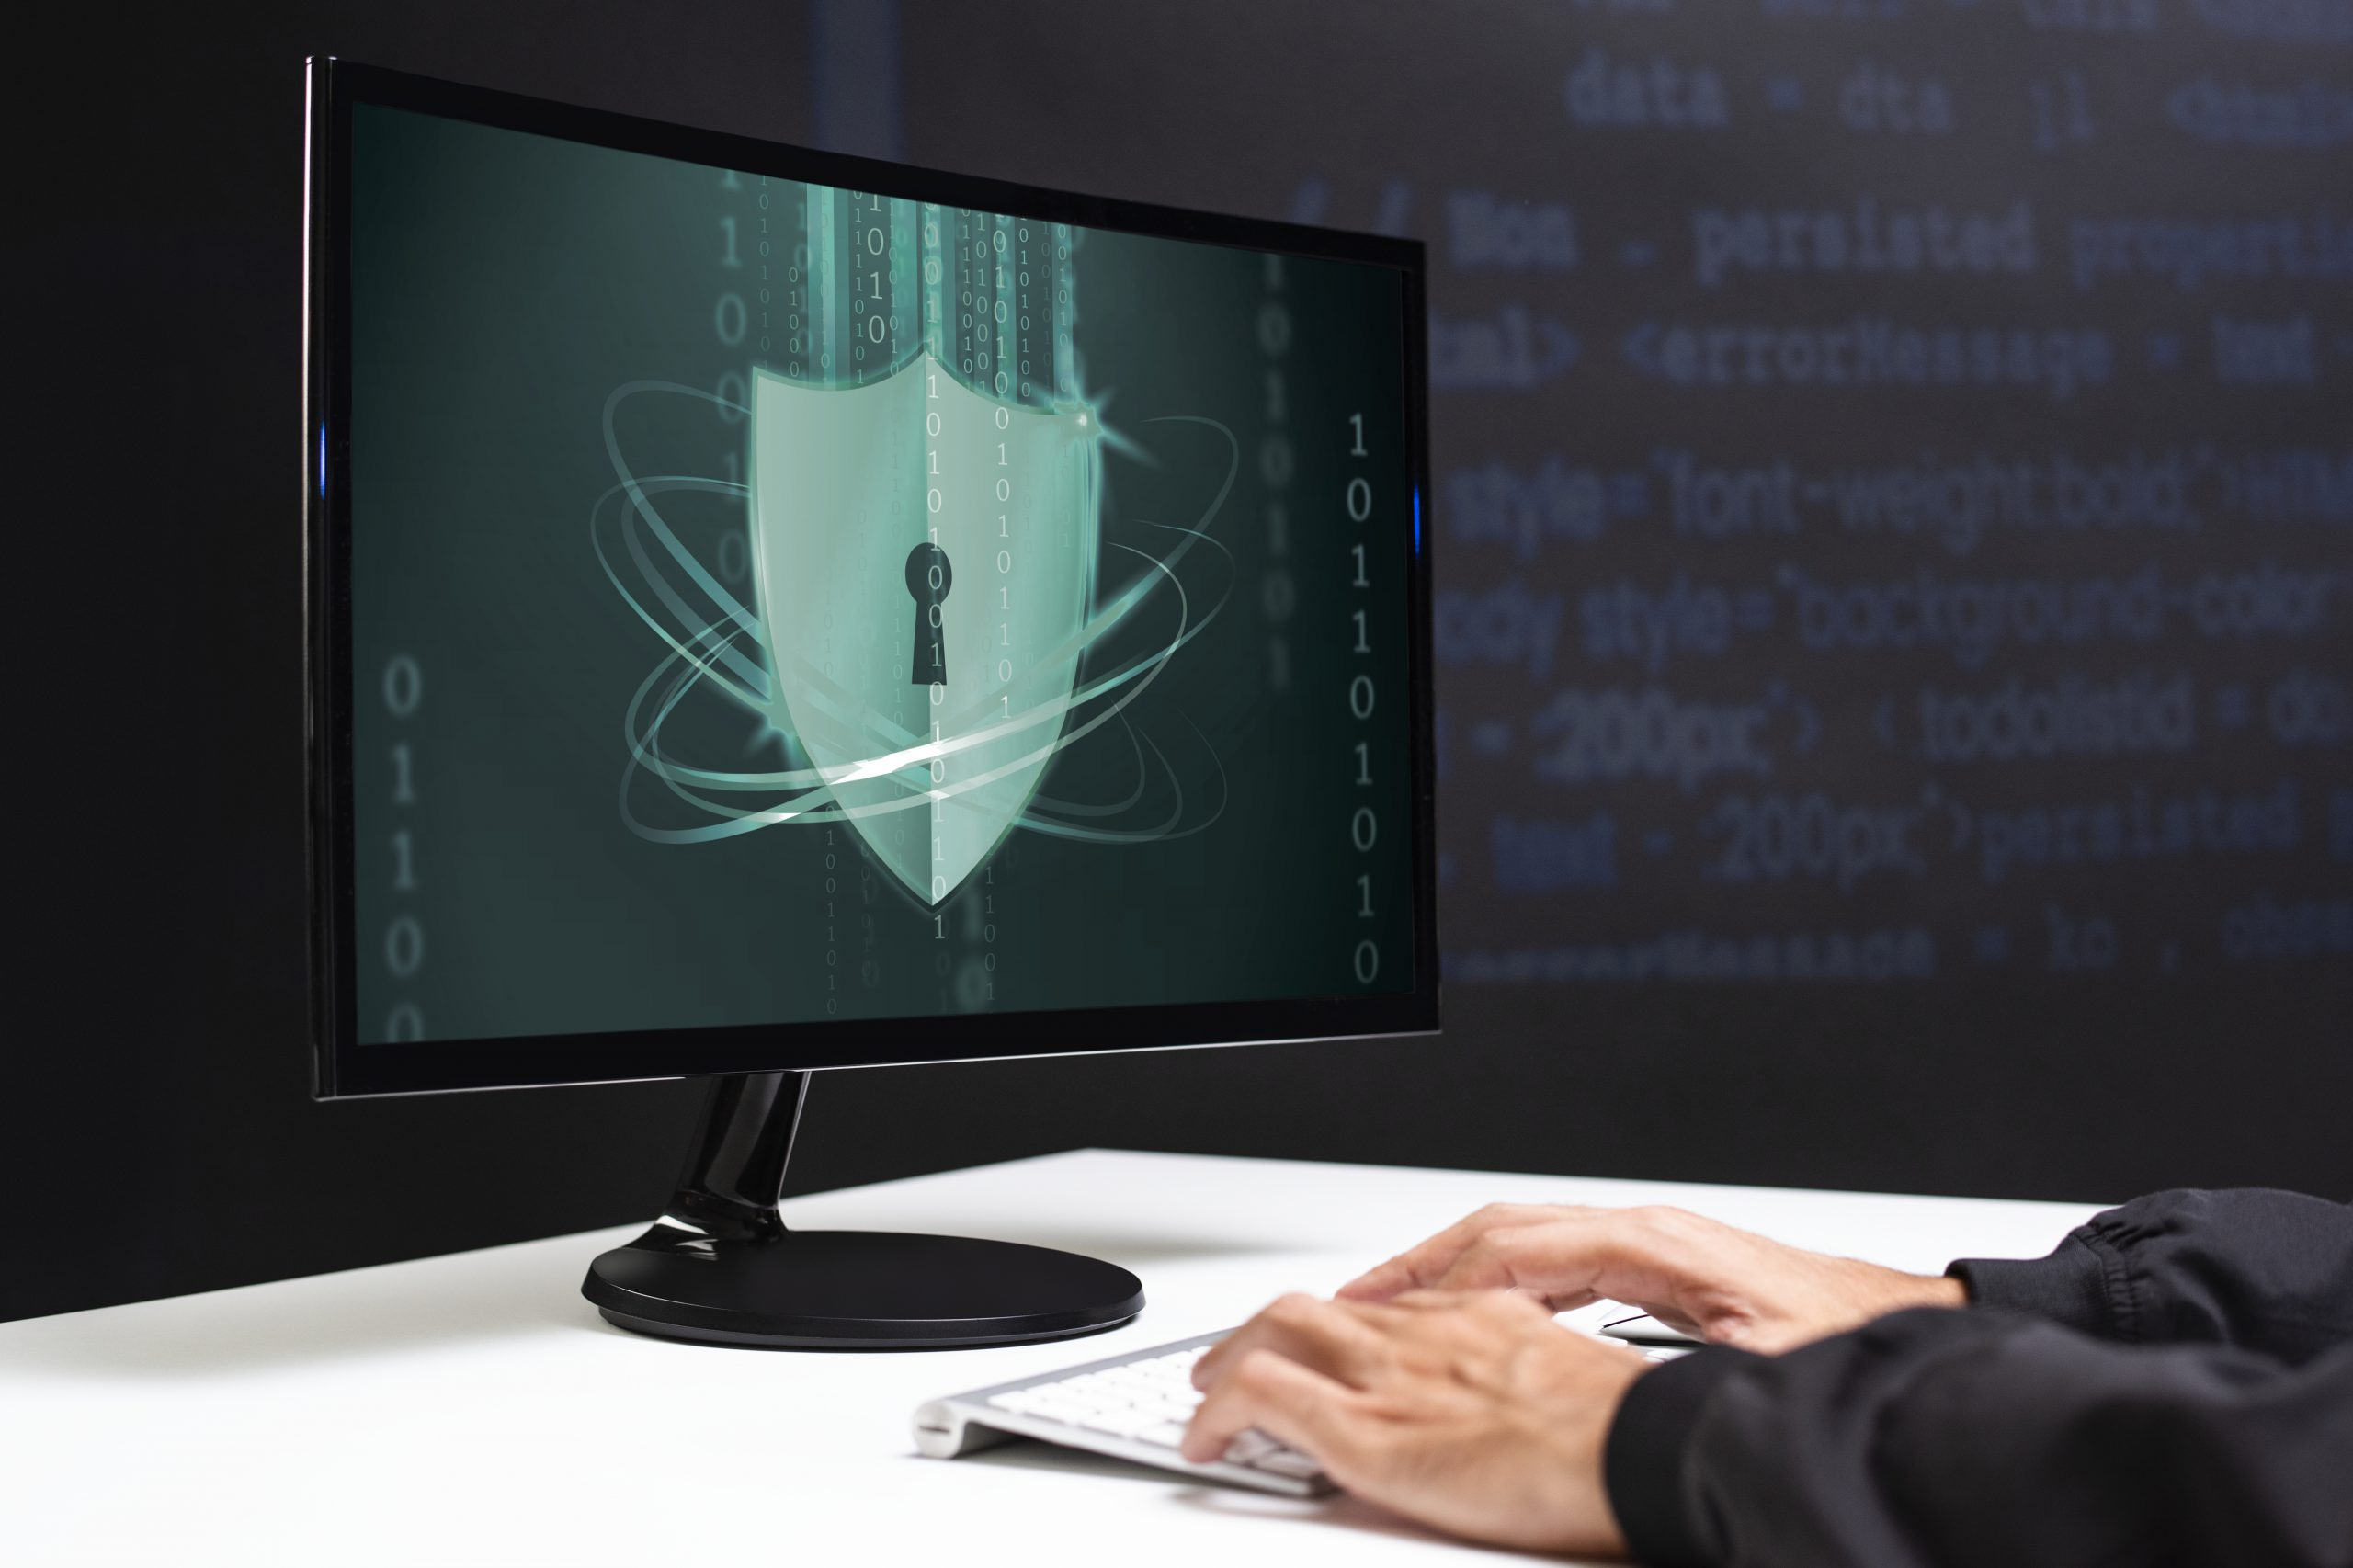 Identity management is the key to security